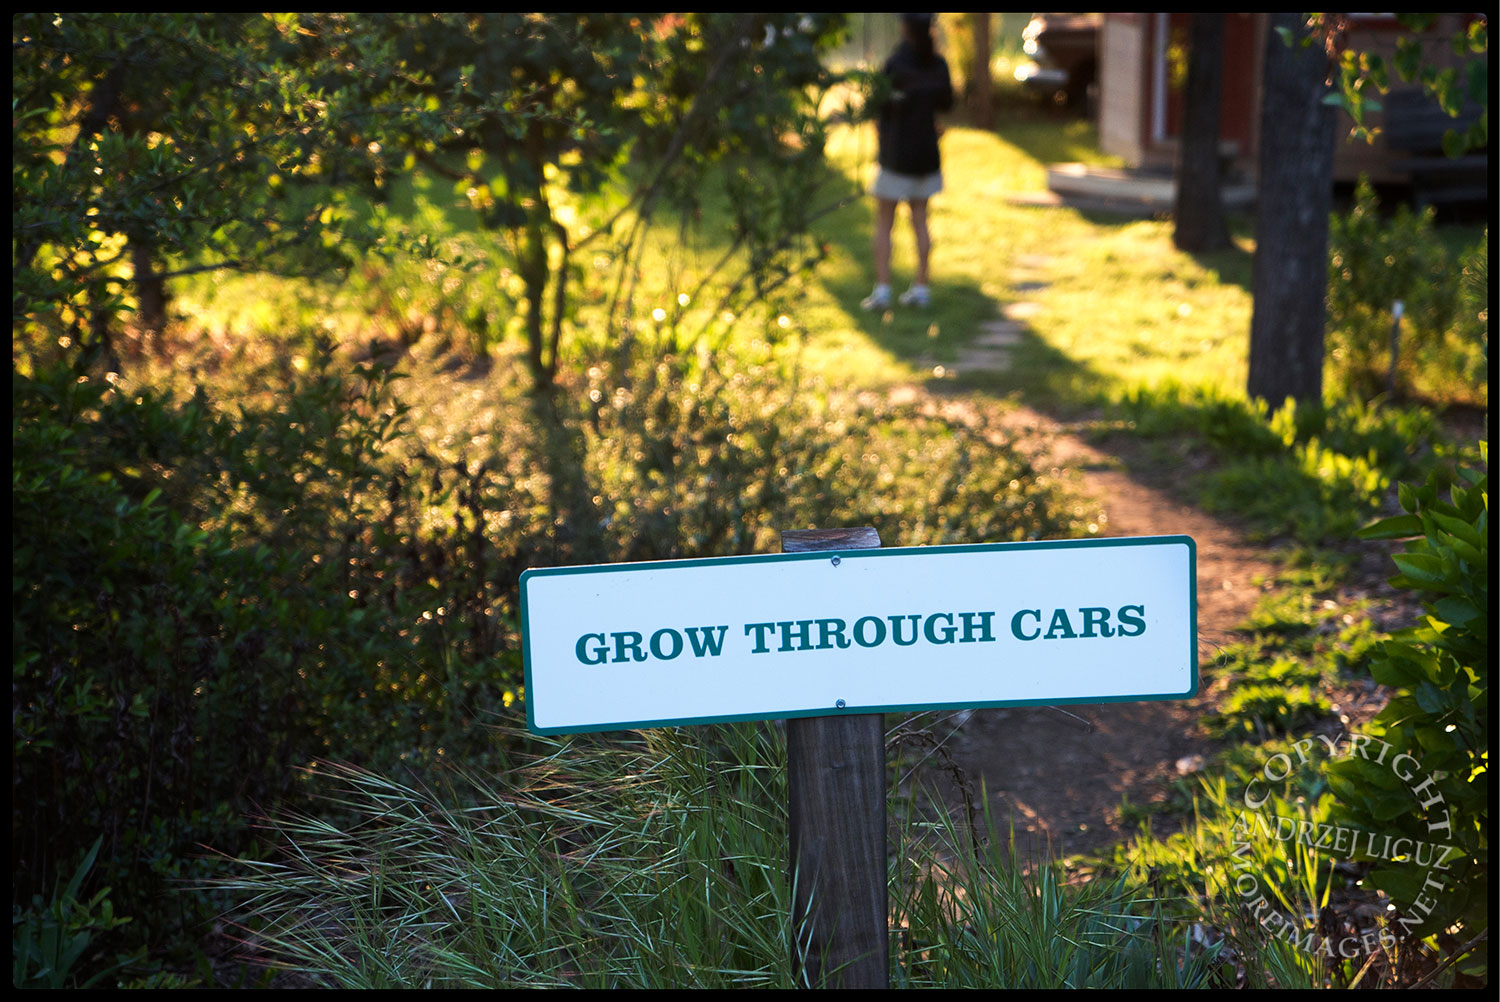 Grow Through Cars, Solar Living Center, Hopland, CA 2015-04-11